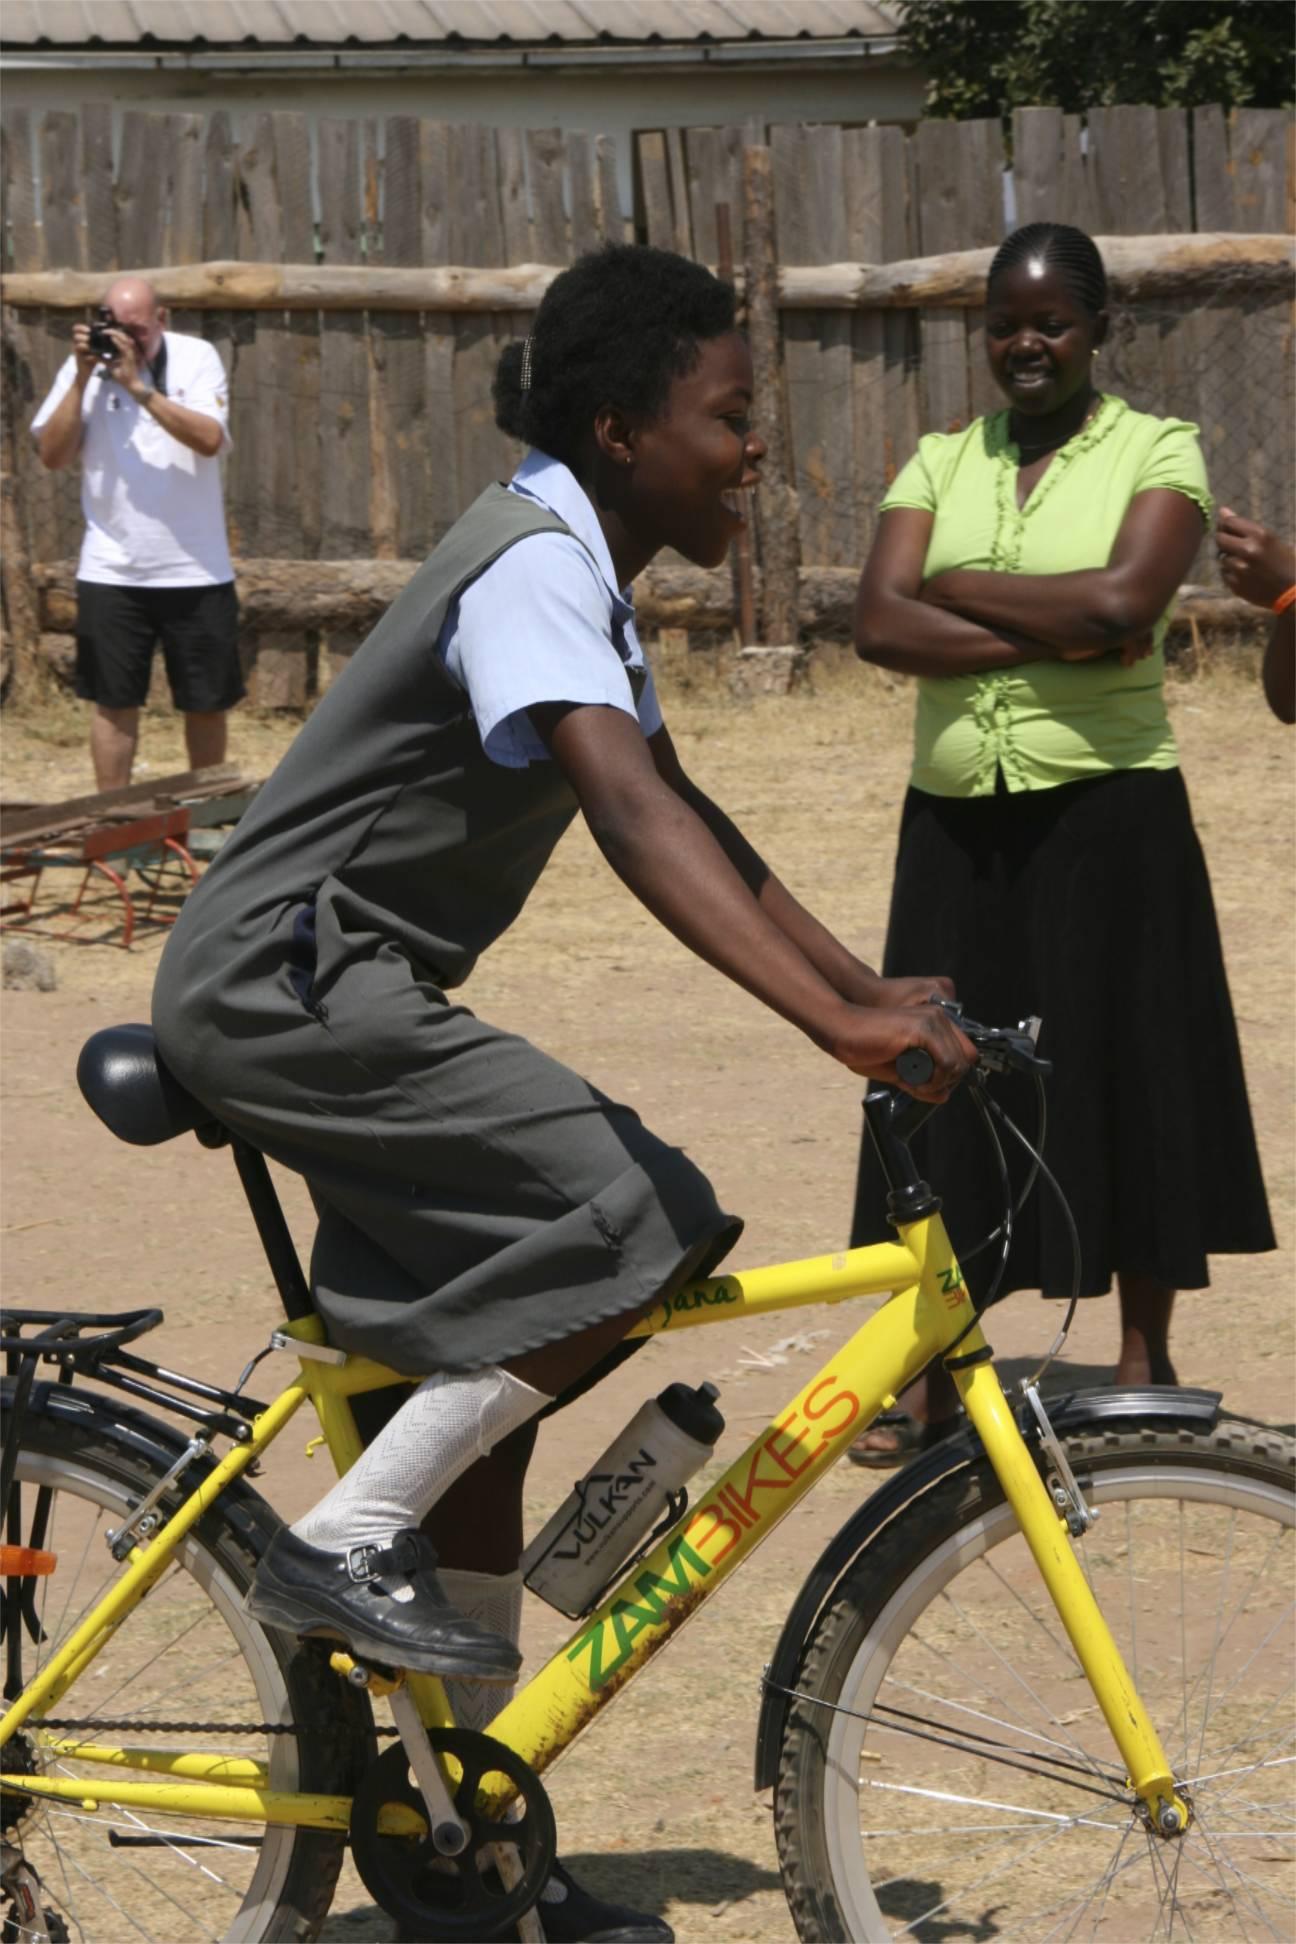 Not only building bicylces but changing lives: A visit to Zambikes